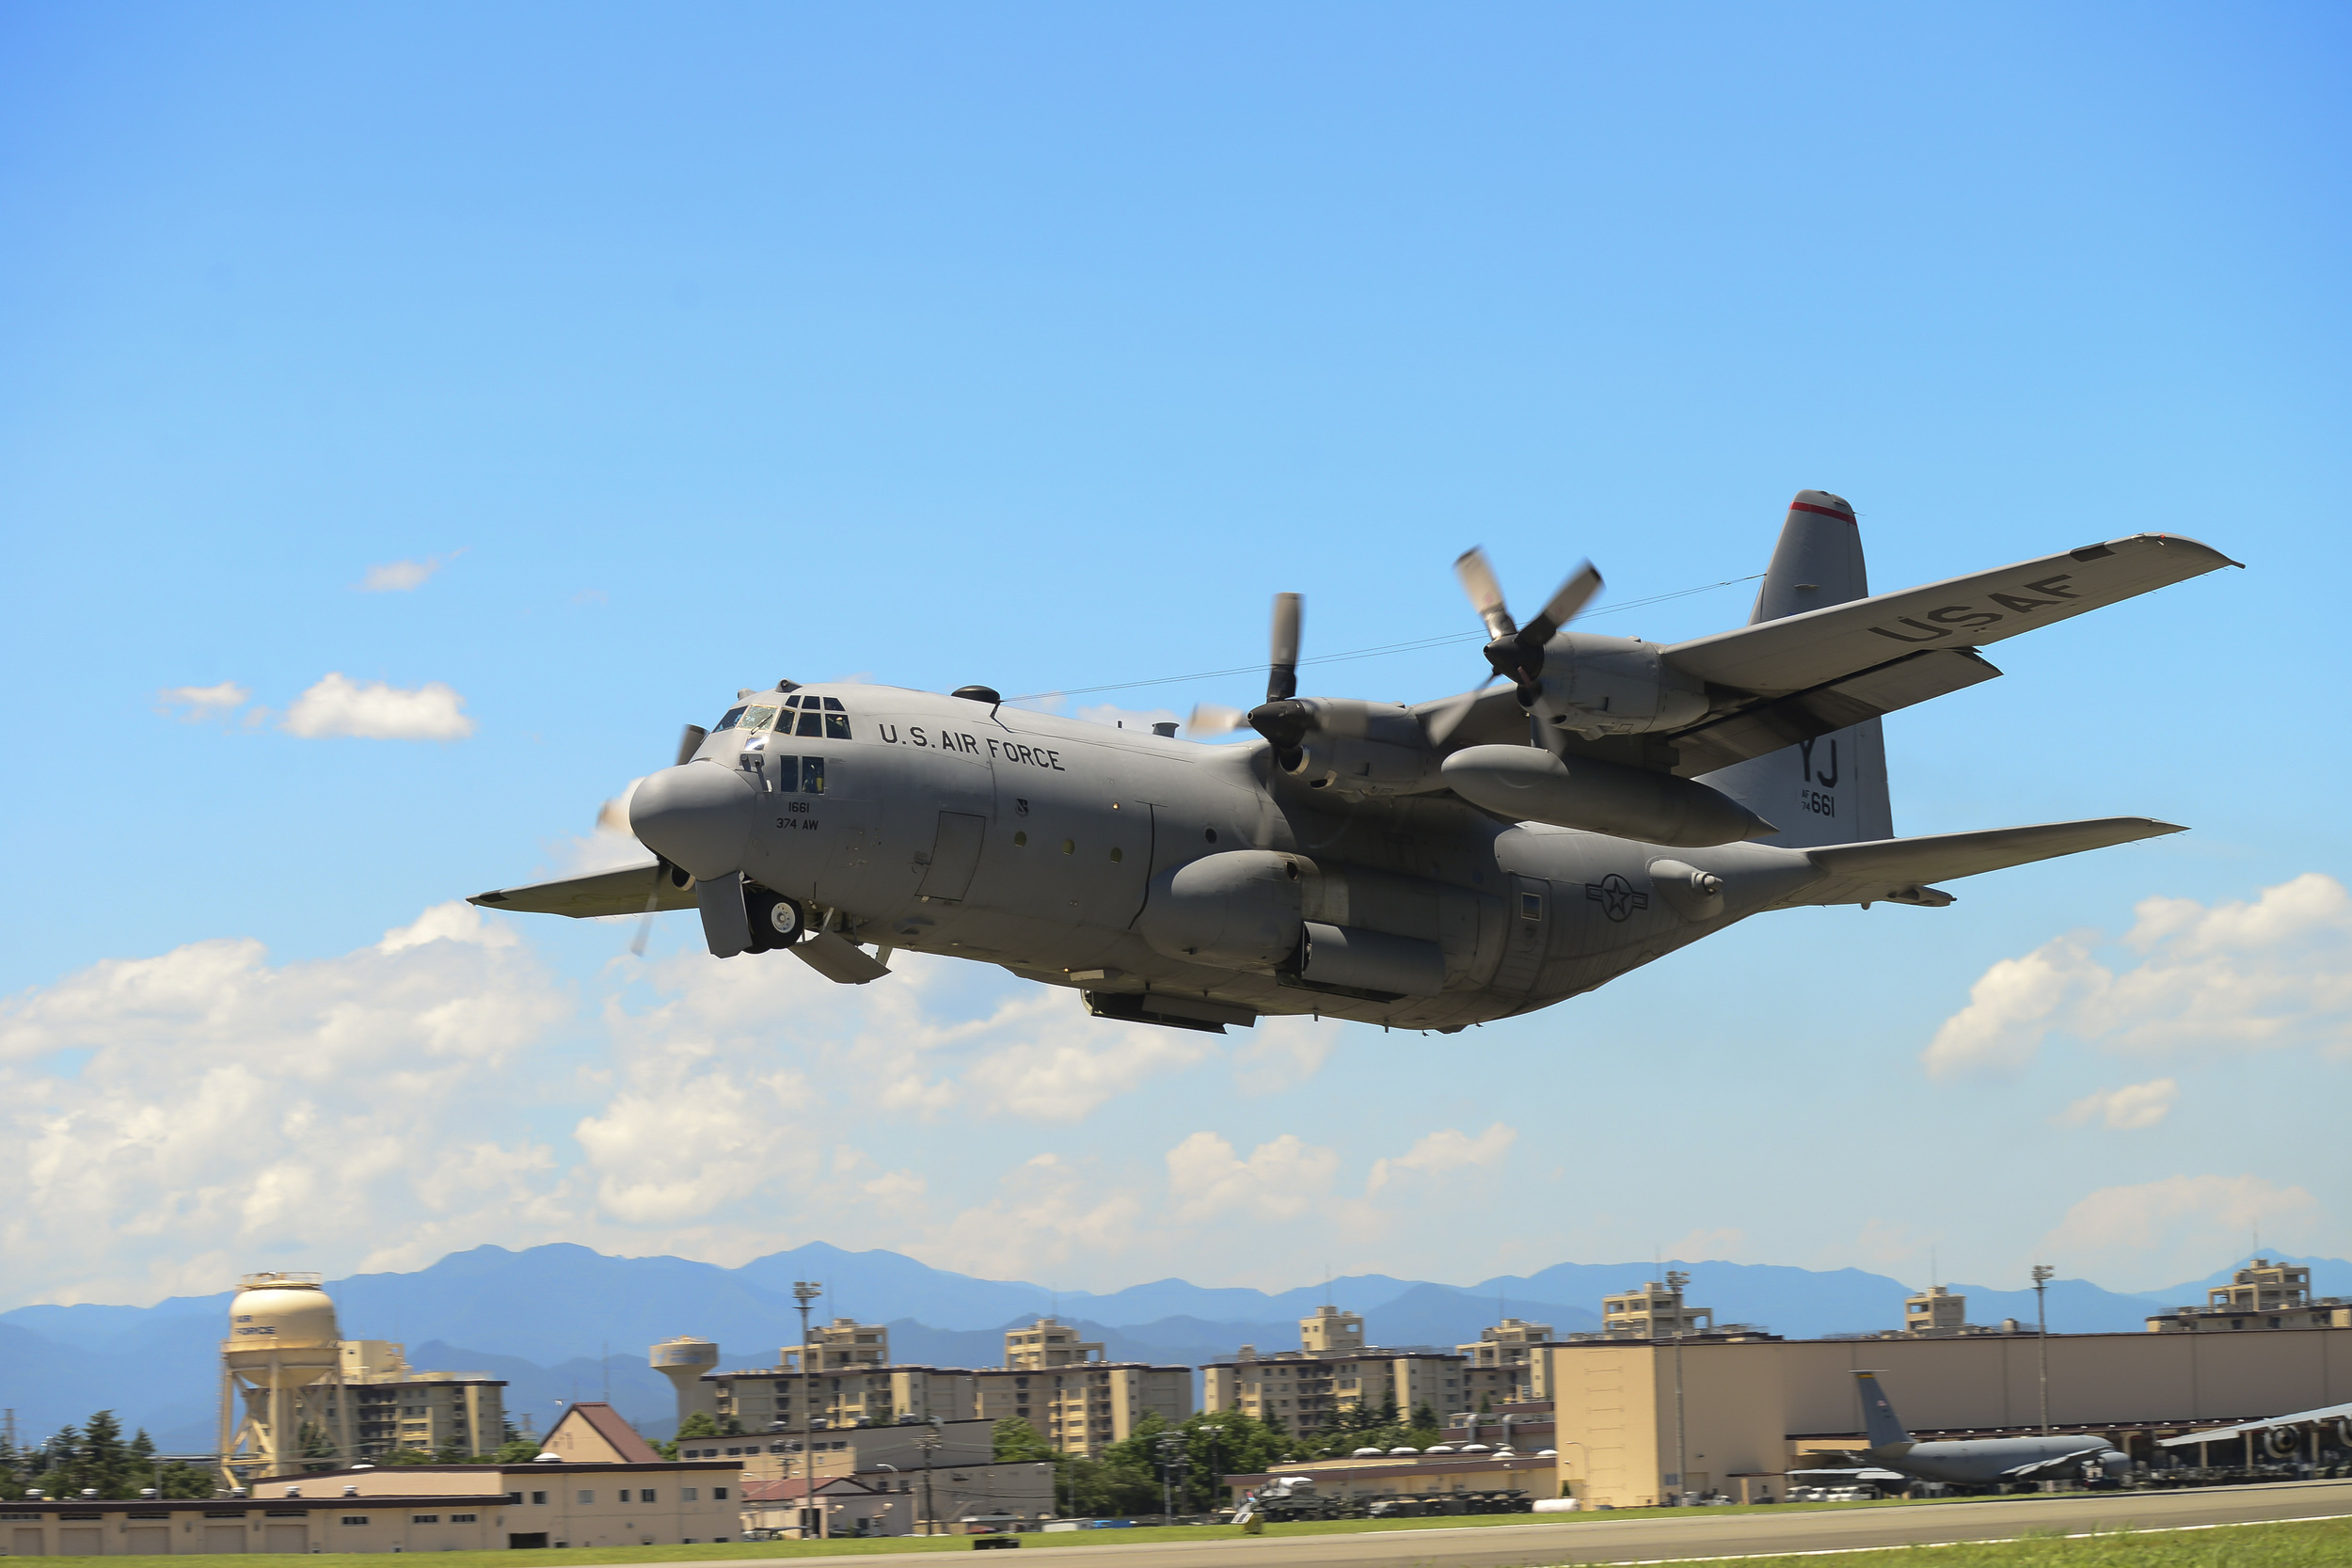 A C-130 Hercules takes off during a training exercise at Yokota Air Base, Japan, July 14, 2015. Ten C-130s participated in the exercise which tested the 36th Airlift Squadron's ability to perform large formation flights. (U.S. Air Force photo by Senior Airman David Owsianka/Released)